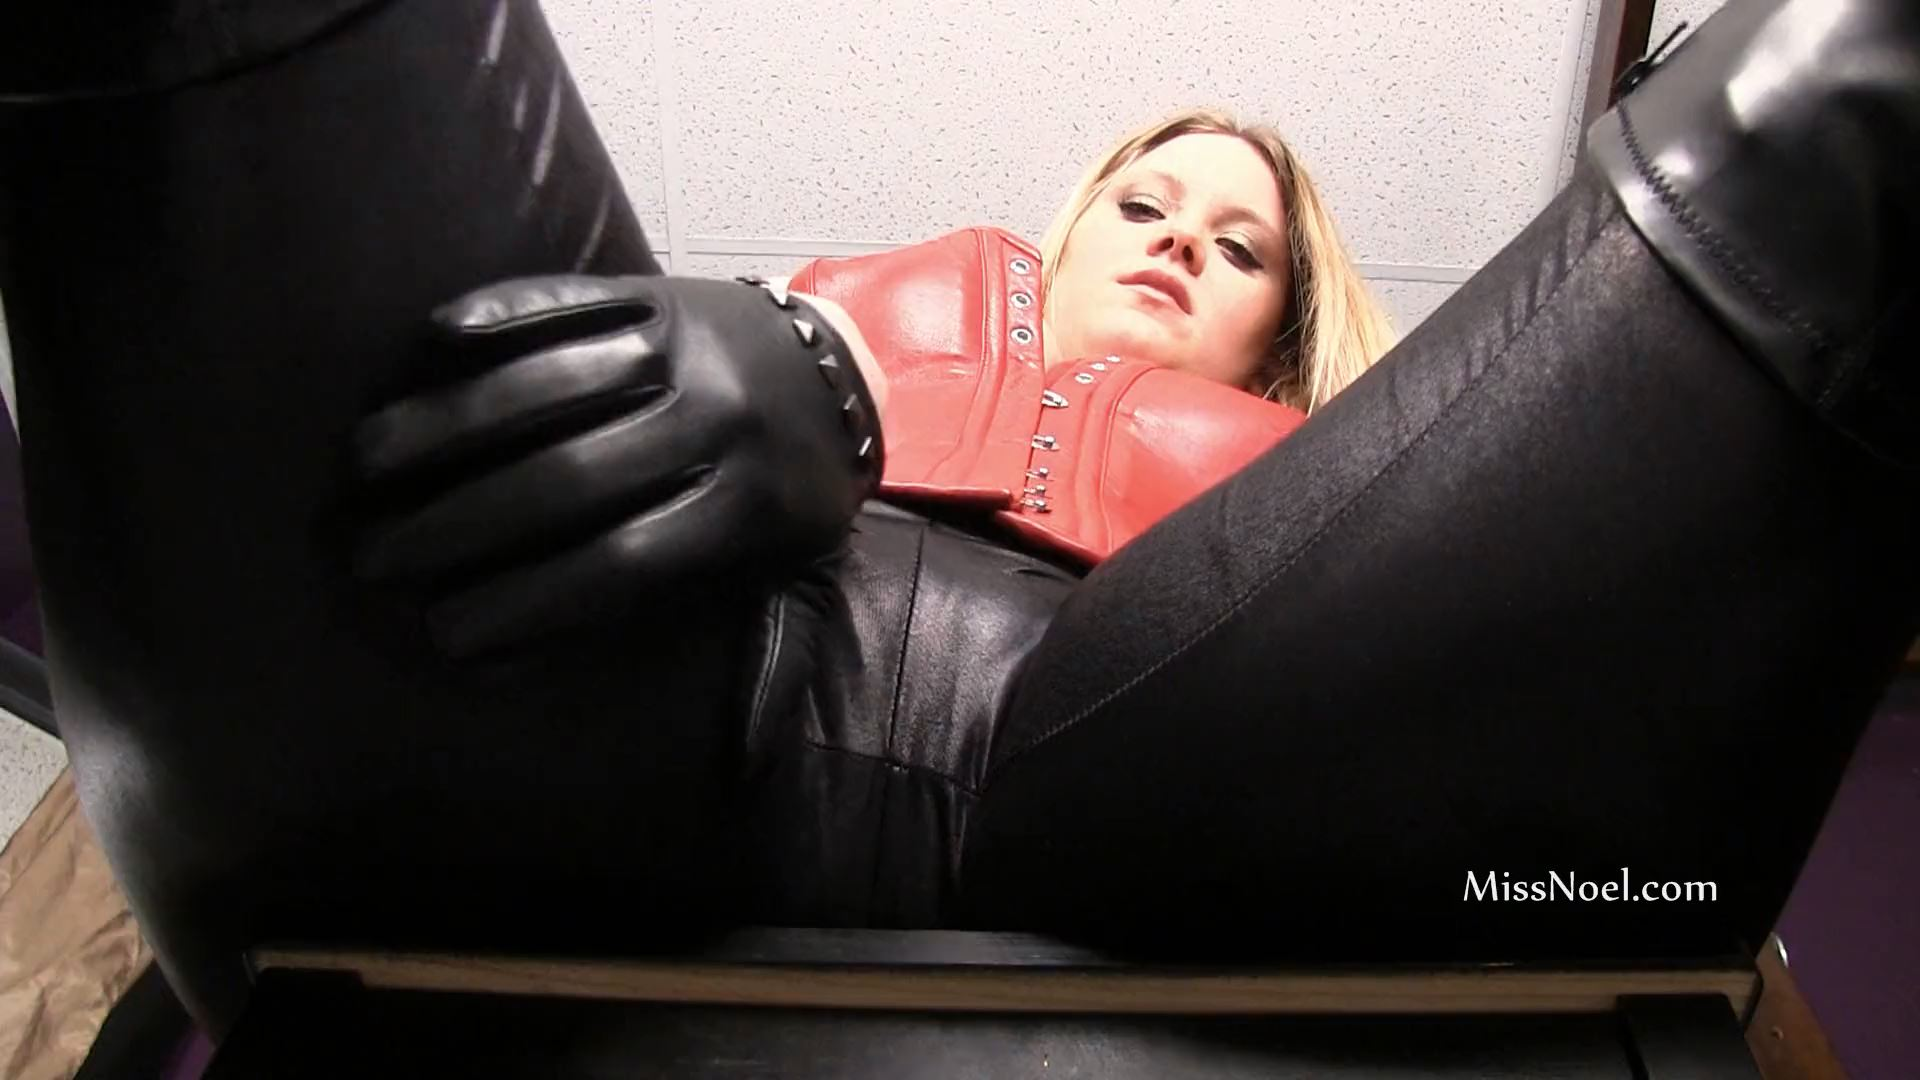 Miss Noel Knight In Scene: HOME WRECKED BY THE LEATHER DOMME - MISSNOEL - FULL HD/1080p/MP4